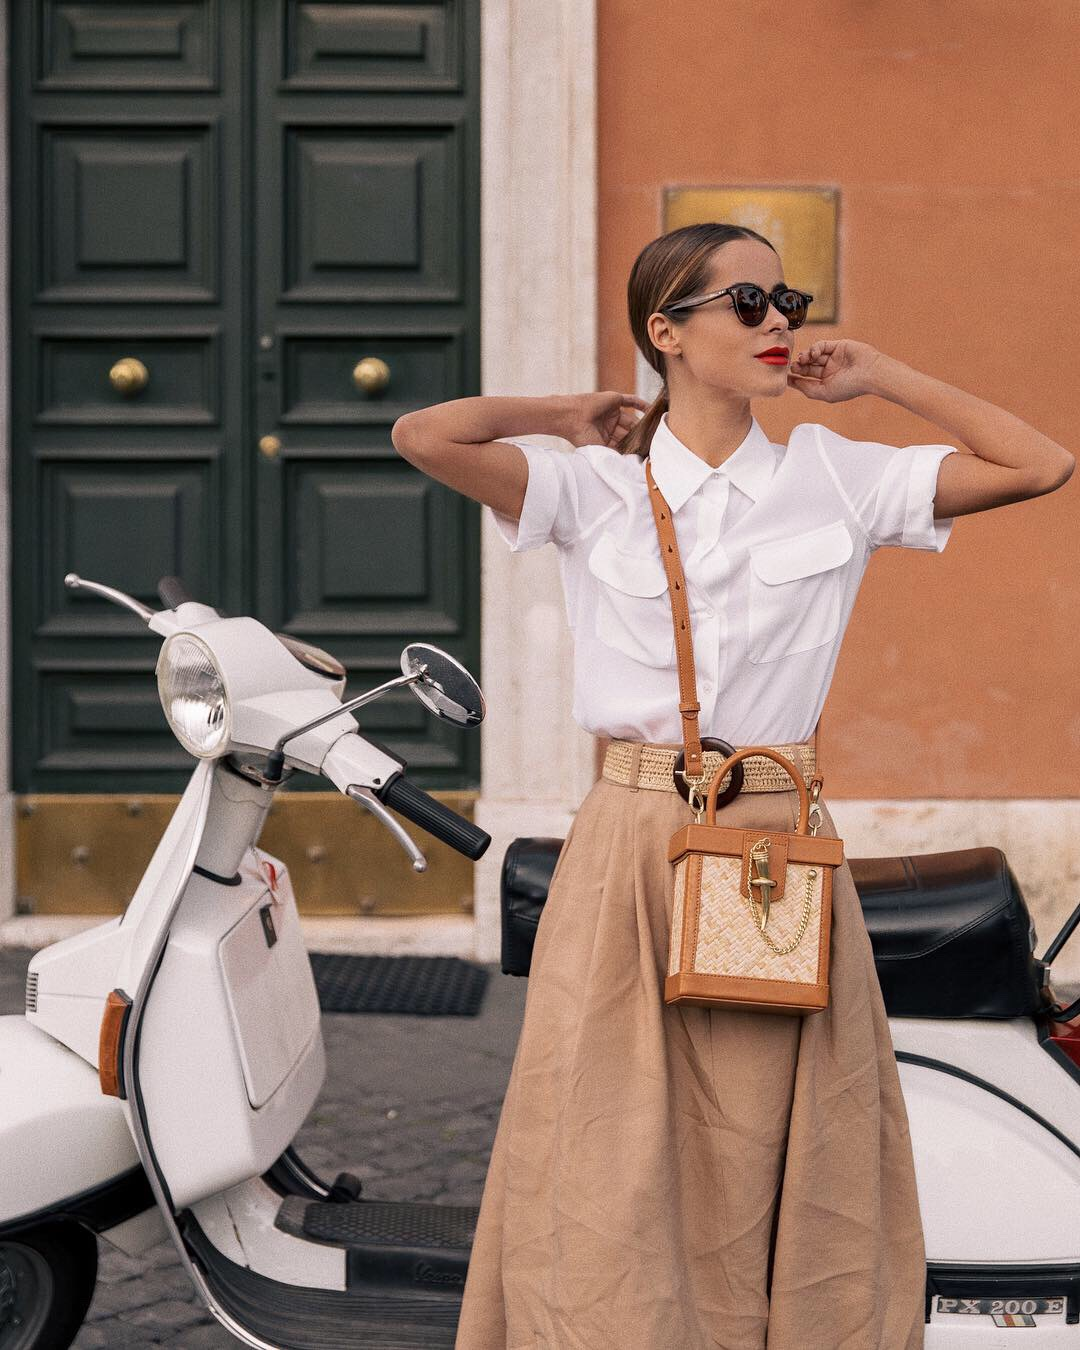 Style Blogger Stephanie Hill shares My Roman Holiday + To Do's on The Style Bungalow